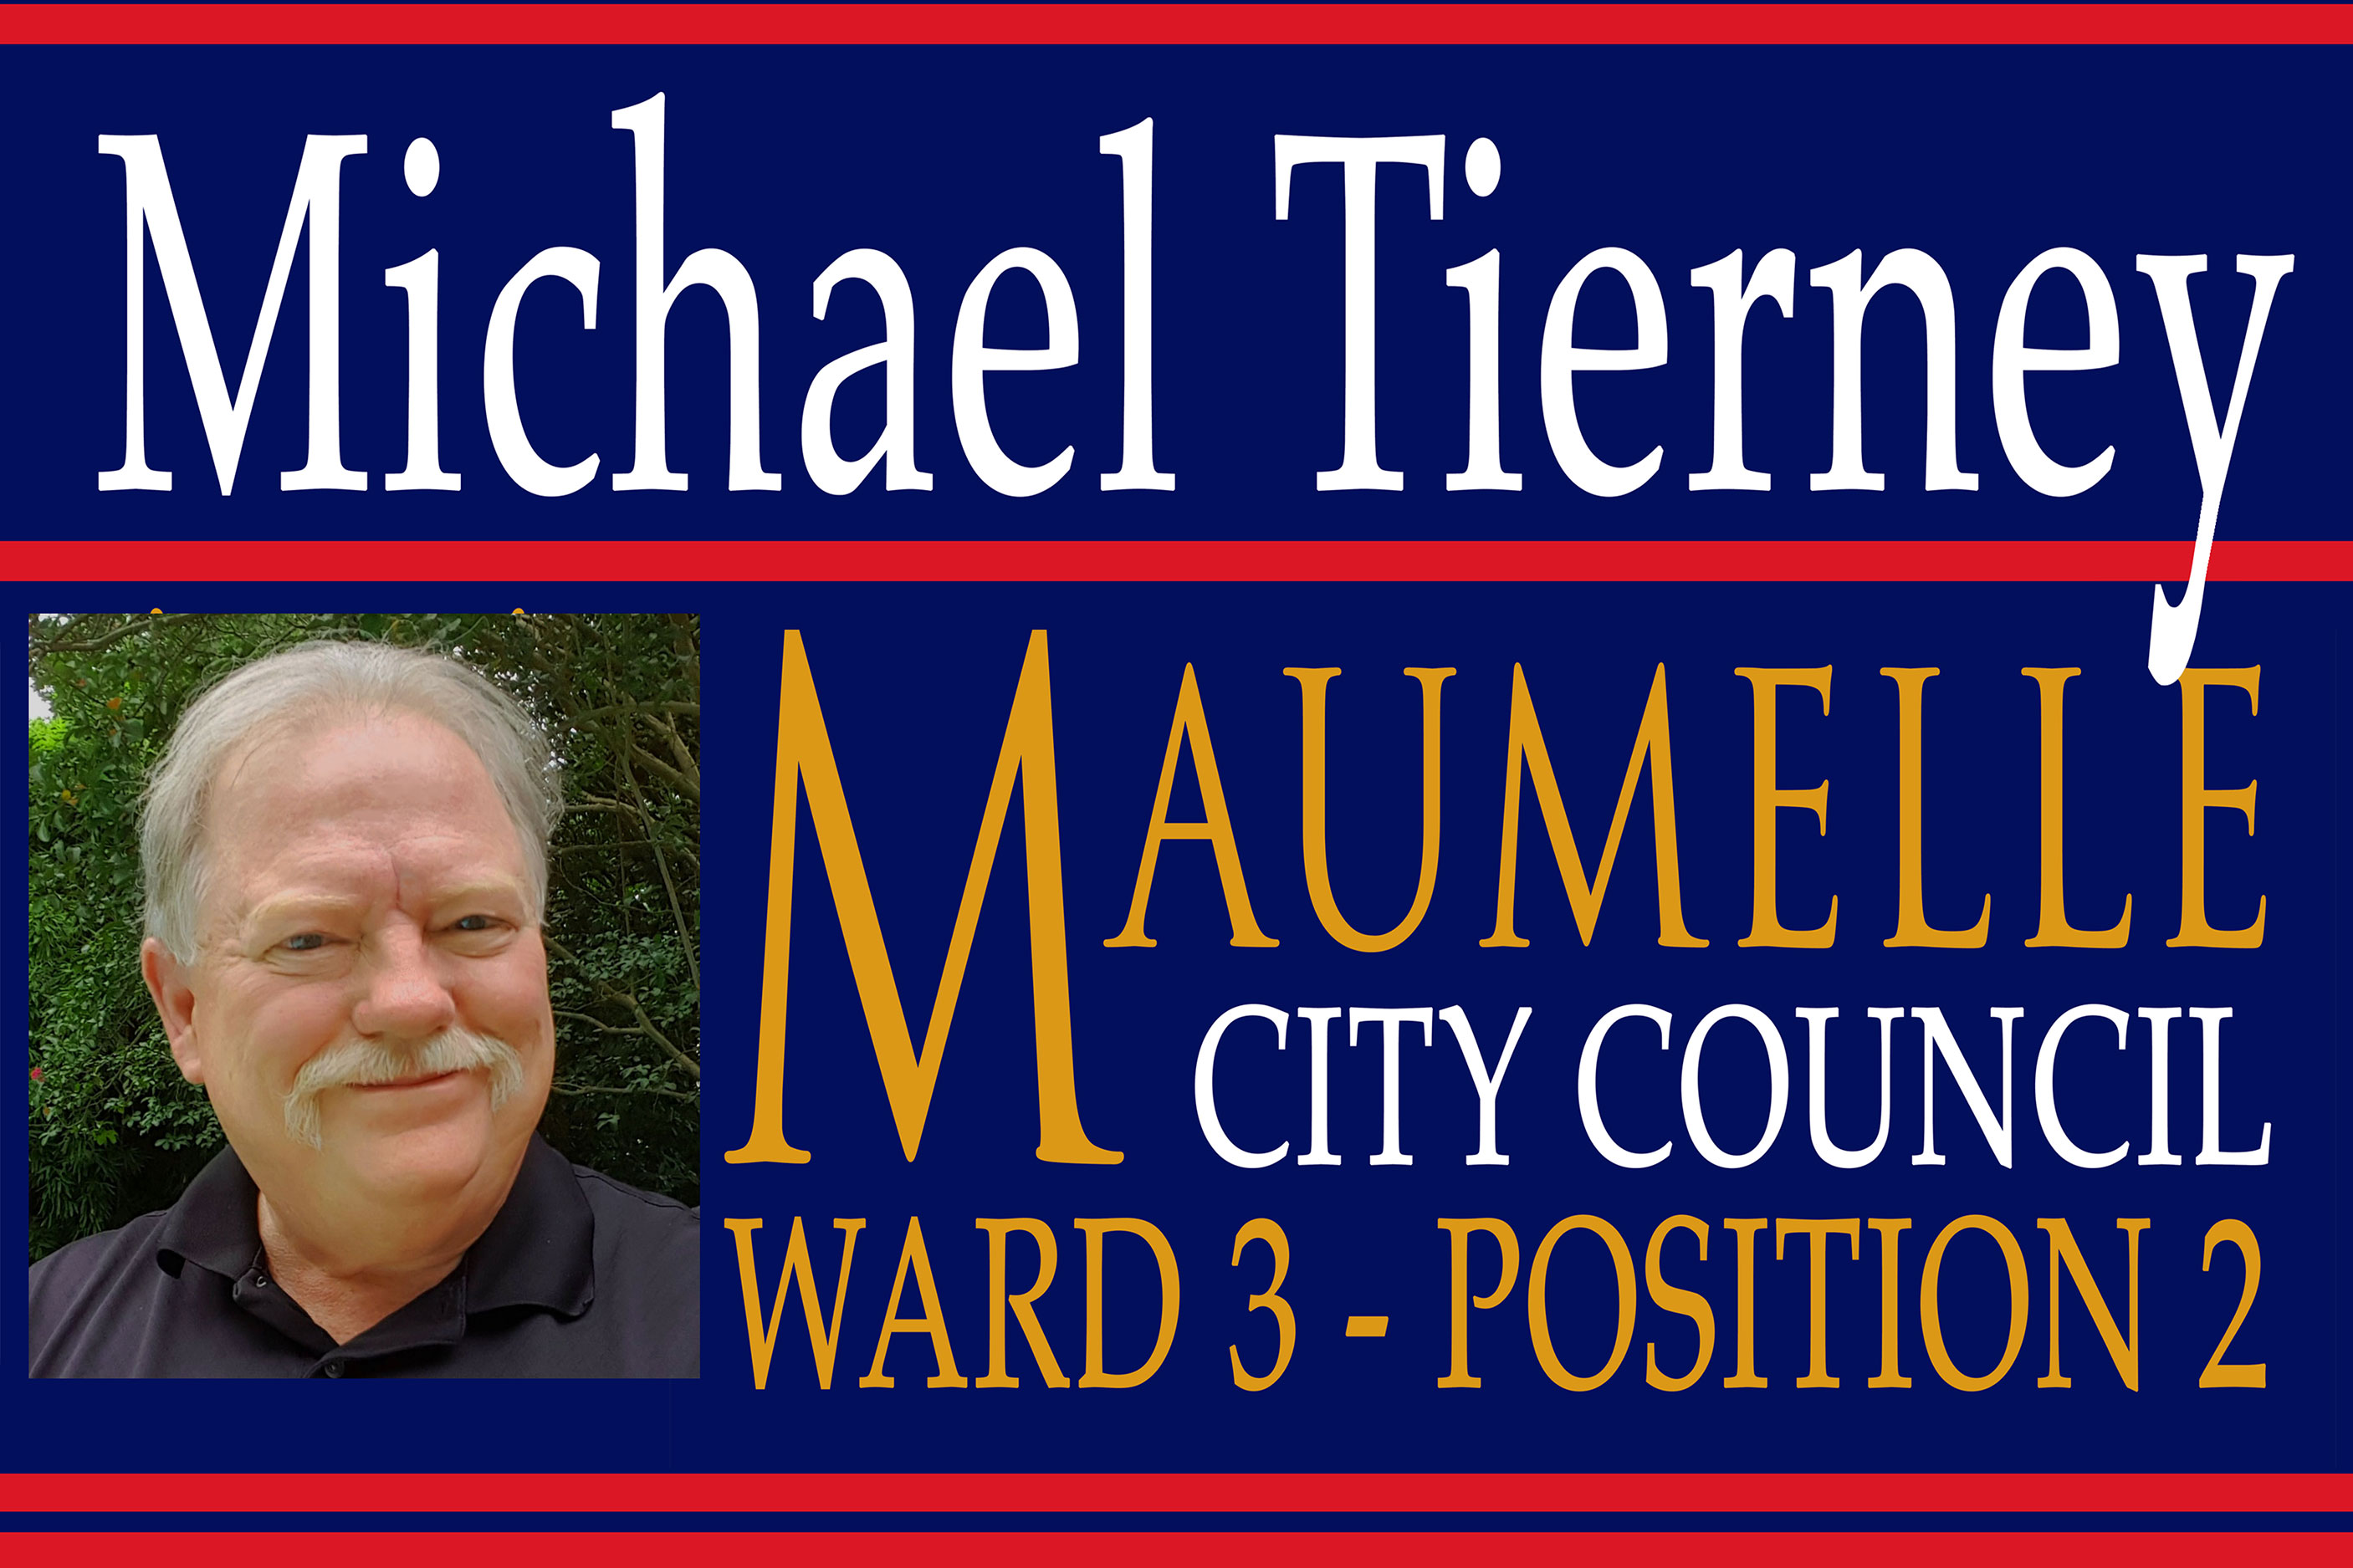 Michael for Maumelle City Council